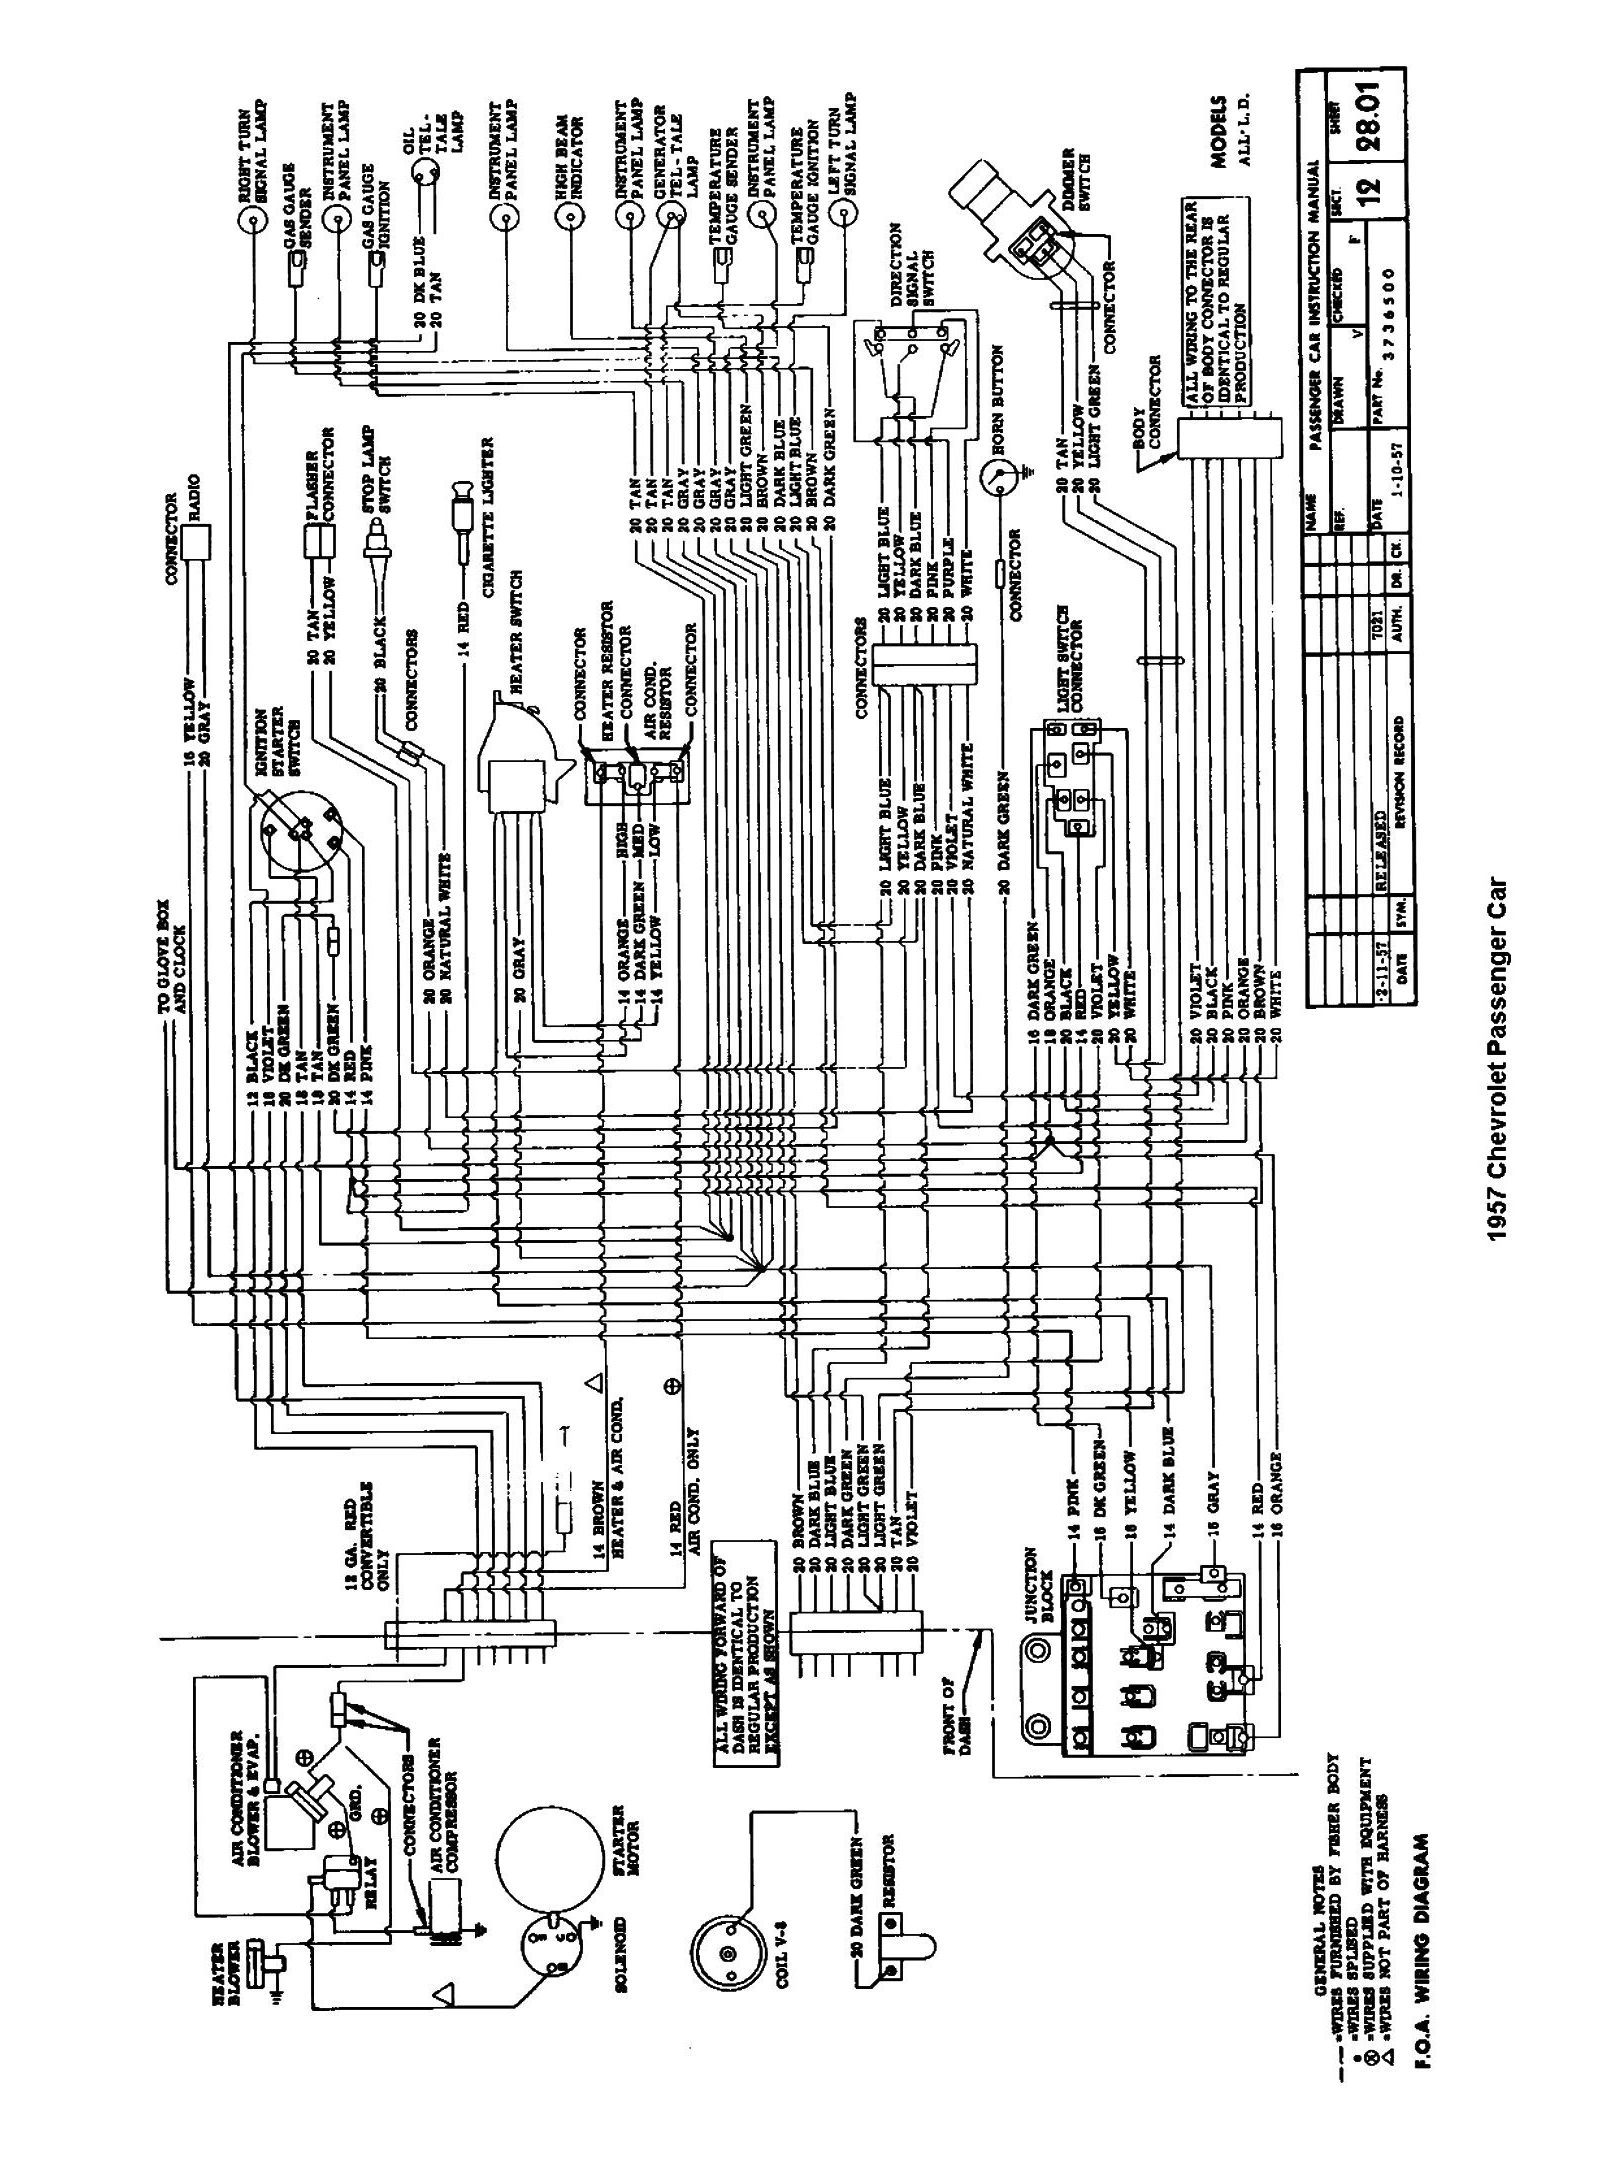 chevy wiring diagrams 69 Chevy Headlight Switch Wiring Diagram 1957 passenger car wiring 2